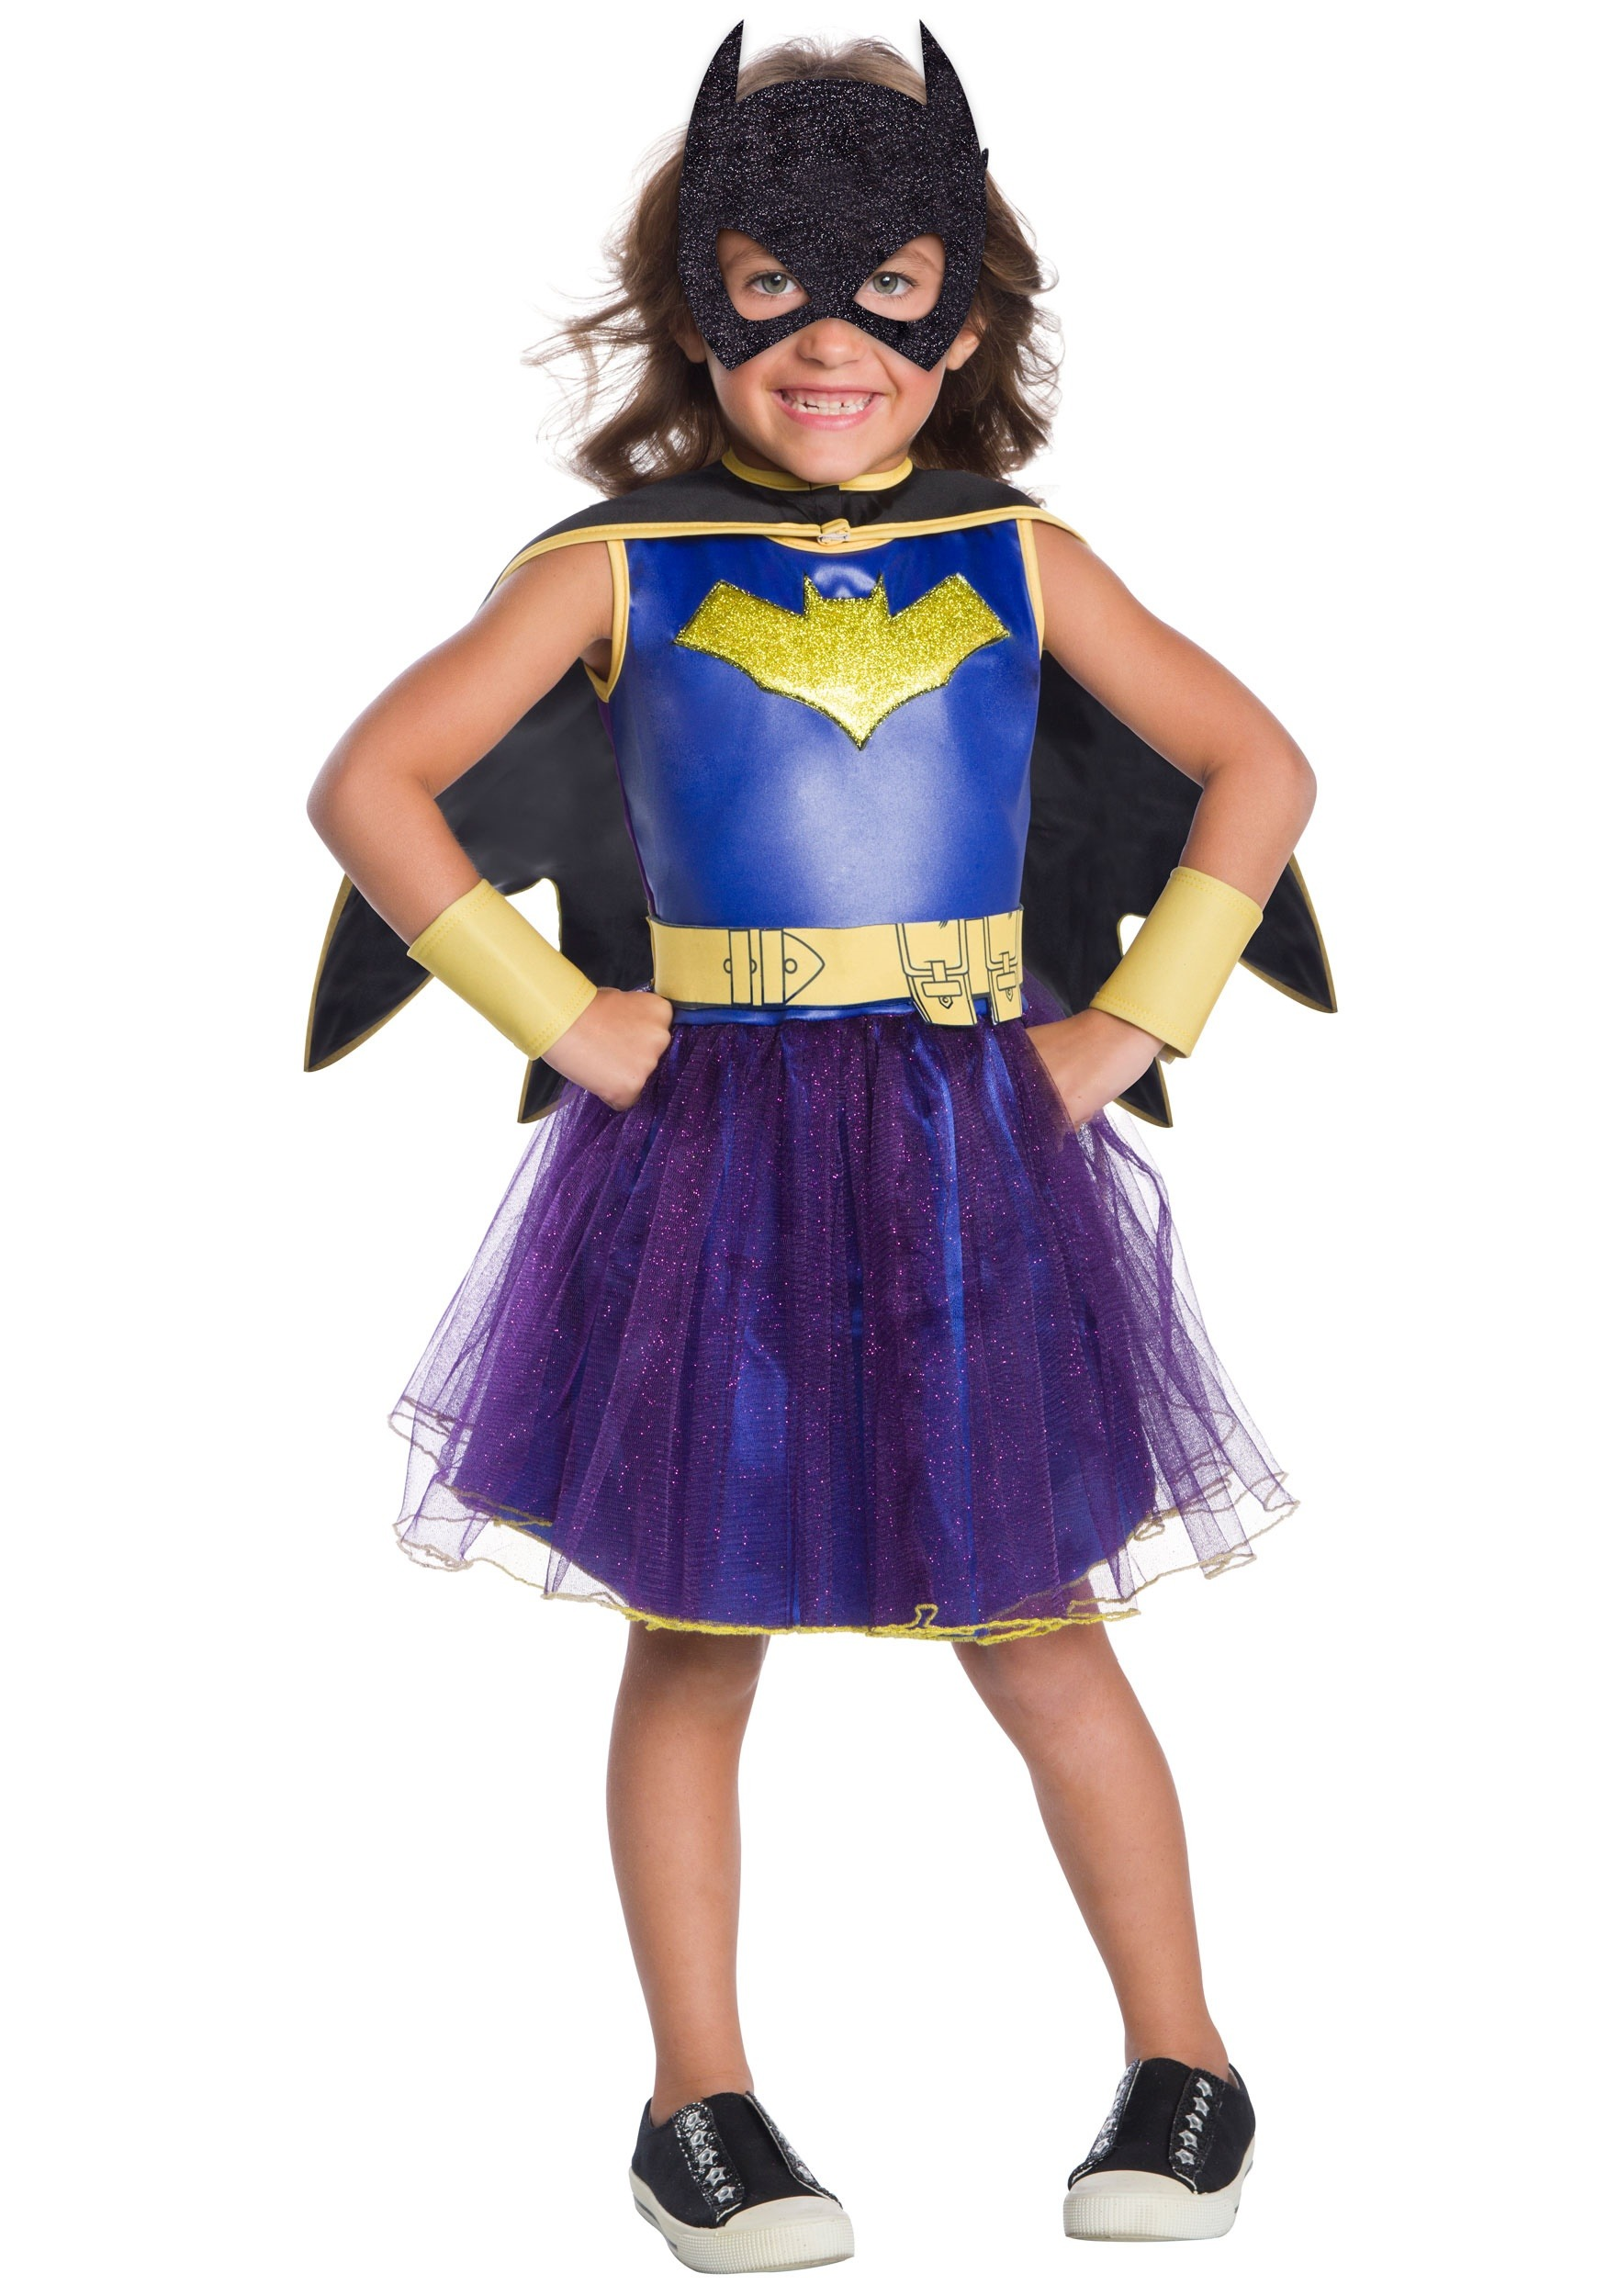 Child Deluxe Batgirl Costume  sc 1 st  lose it lyrics Fun AU : child deluxe catwoman costume  - Germanpascual.Com